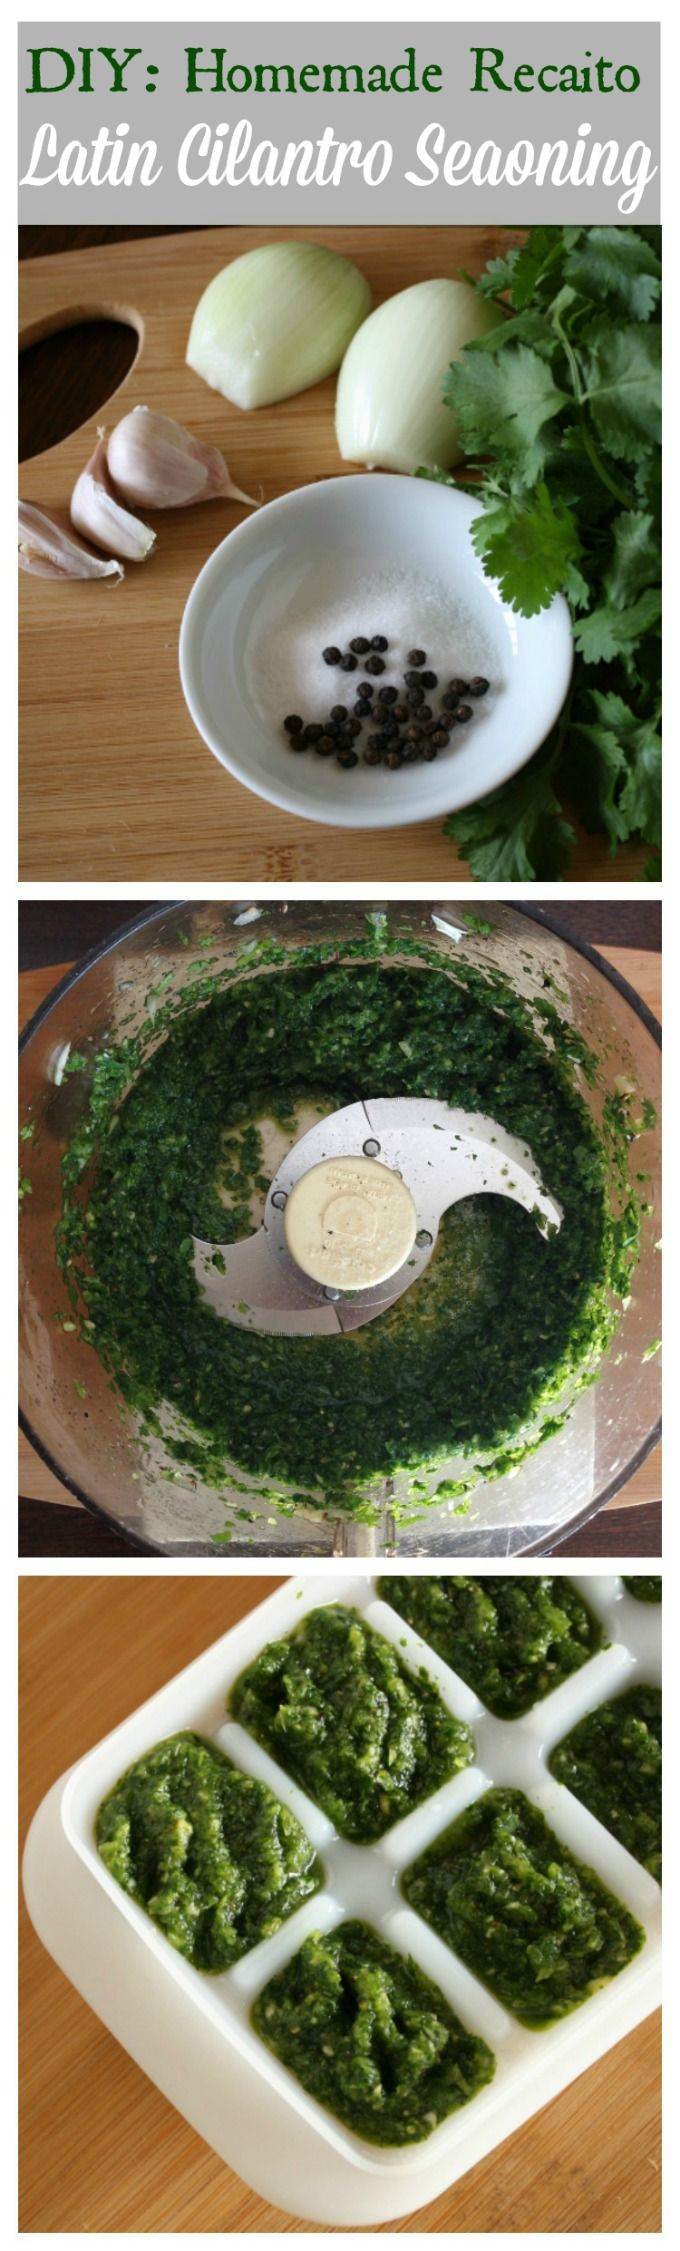 Here is a recipe for recaito.  This is a popular cilantro seasoning base for many Latin American dishes. I love this in black beans! | ethnicspoon.com